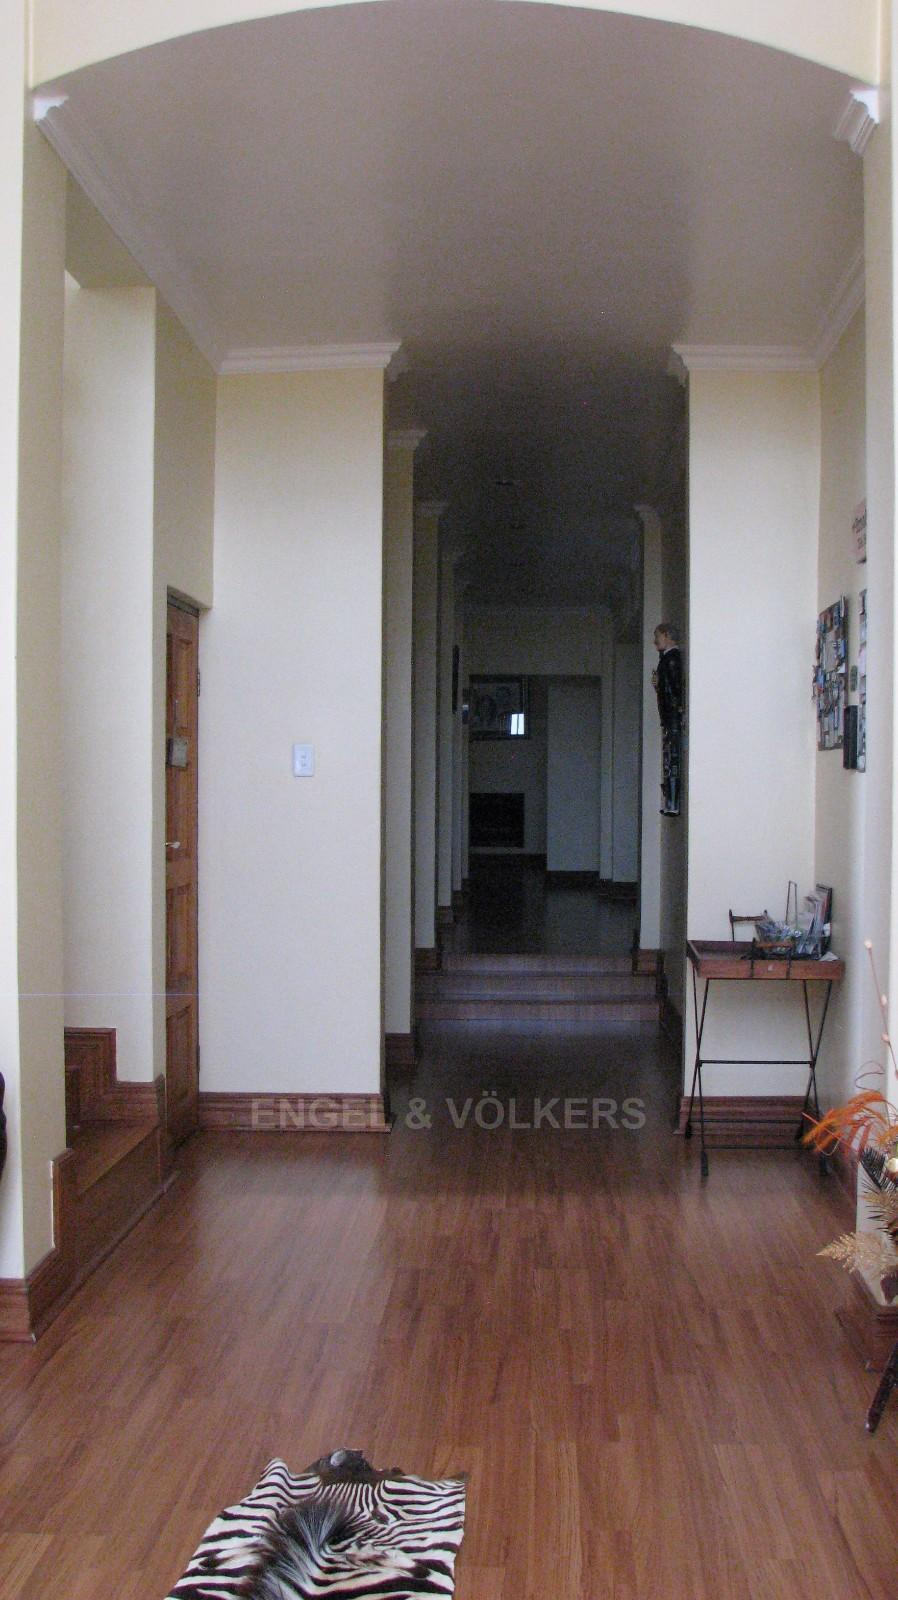 House in Melodie A/h - Wooden floors with high arch ceilings